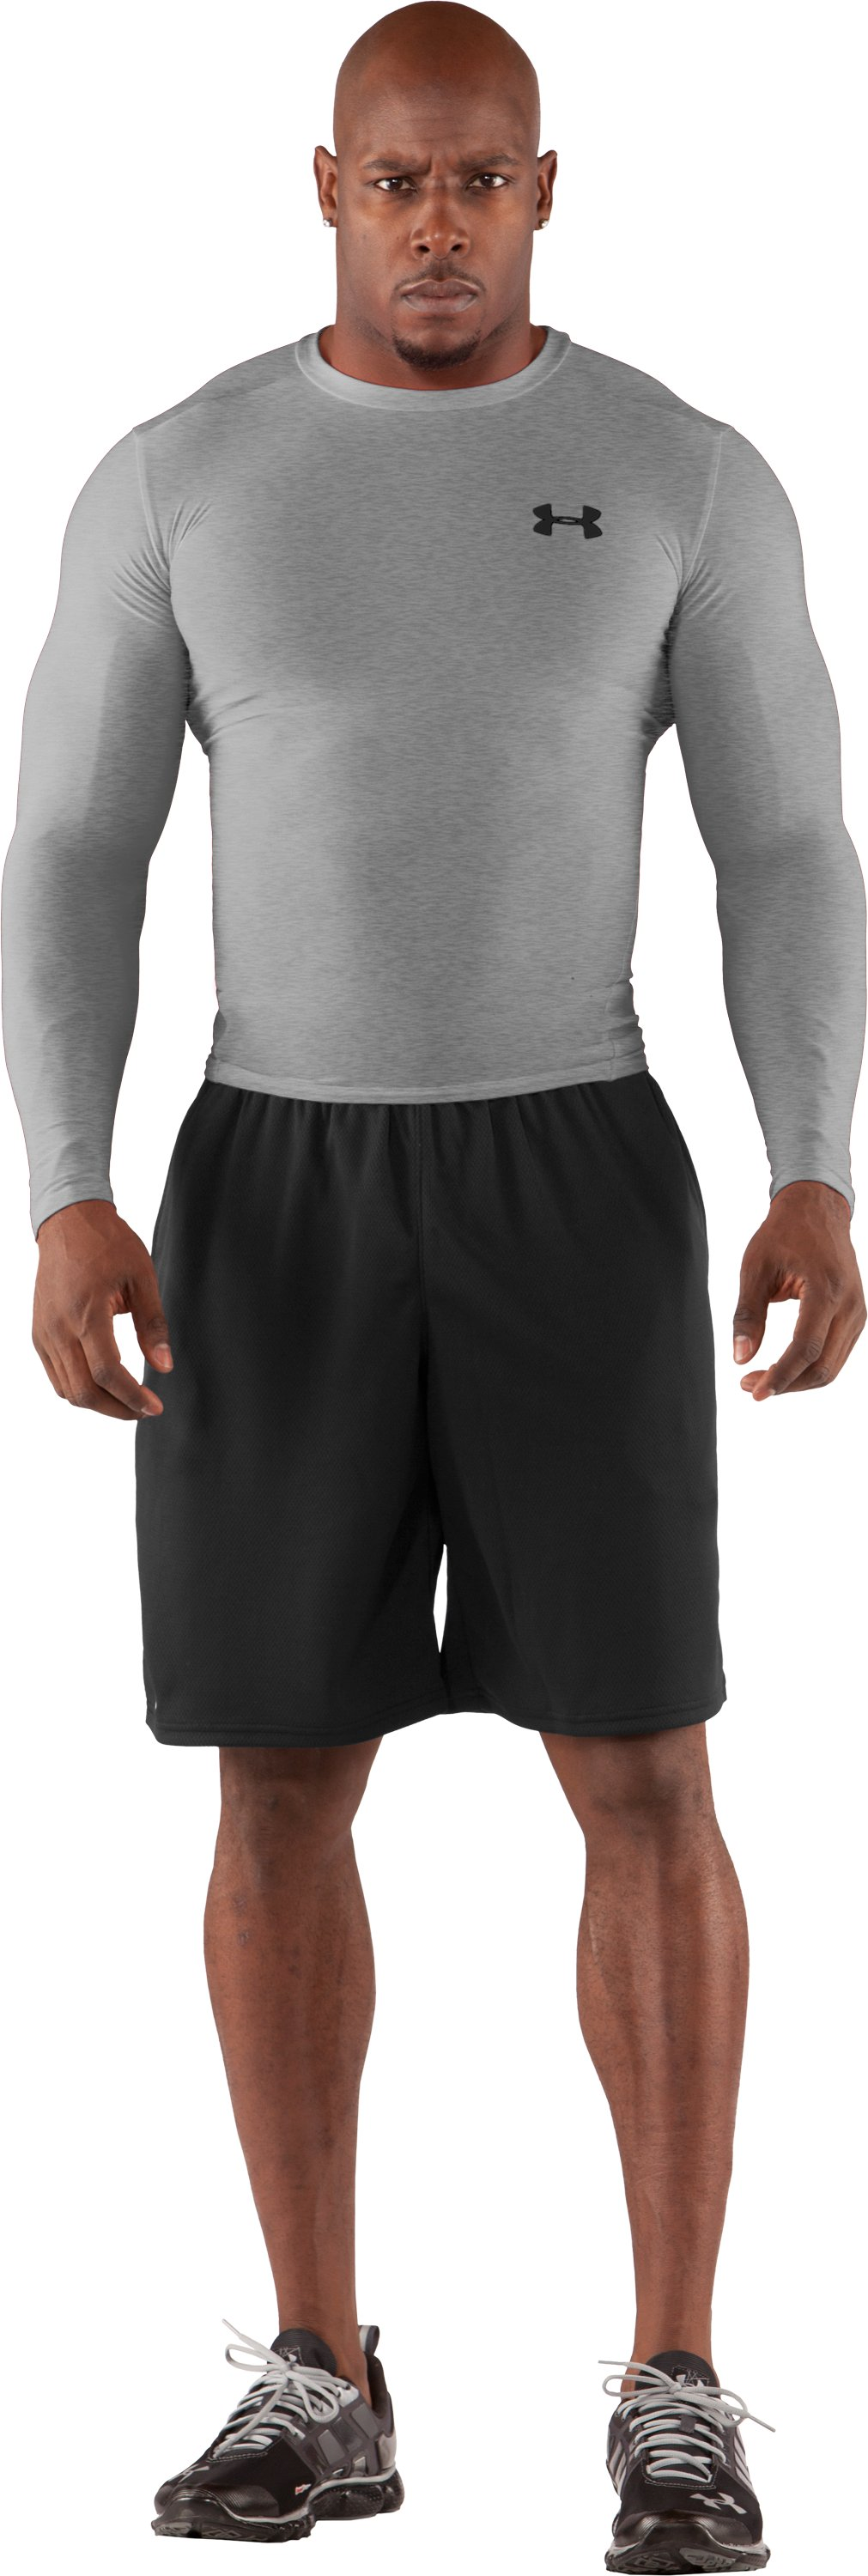 Men's HeatGear® Compression Long Sleeve T-Shirt, Medium Gray Heather, Front